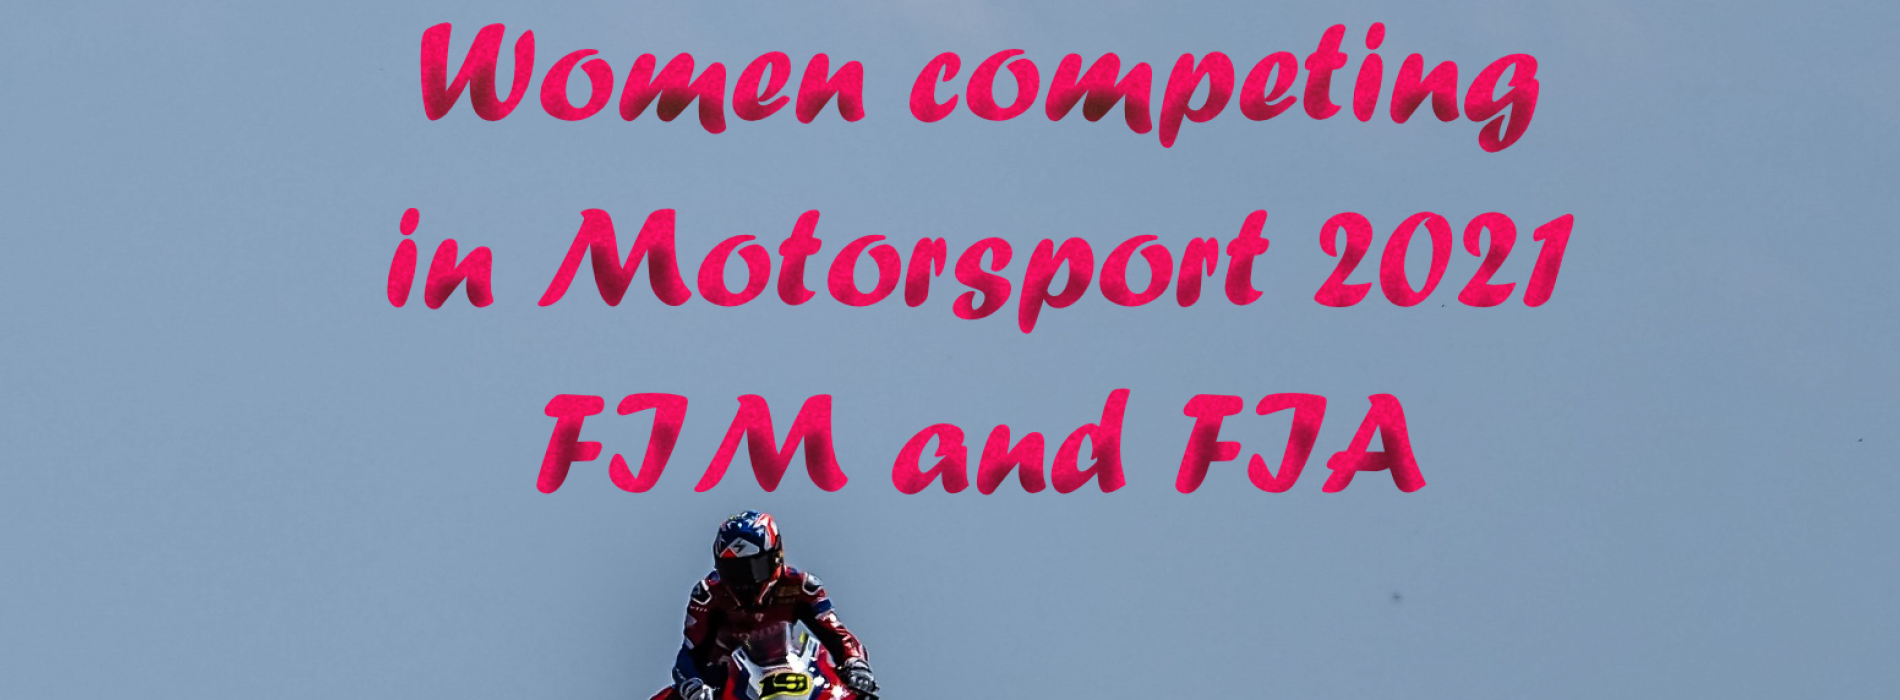 Women competing in Motorsport 2021- FIM and FIA Federations.